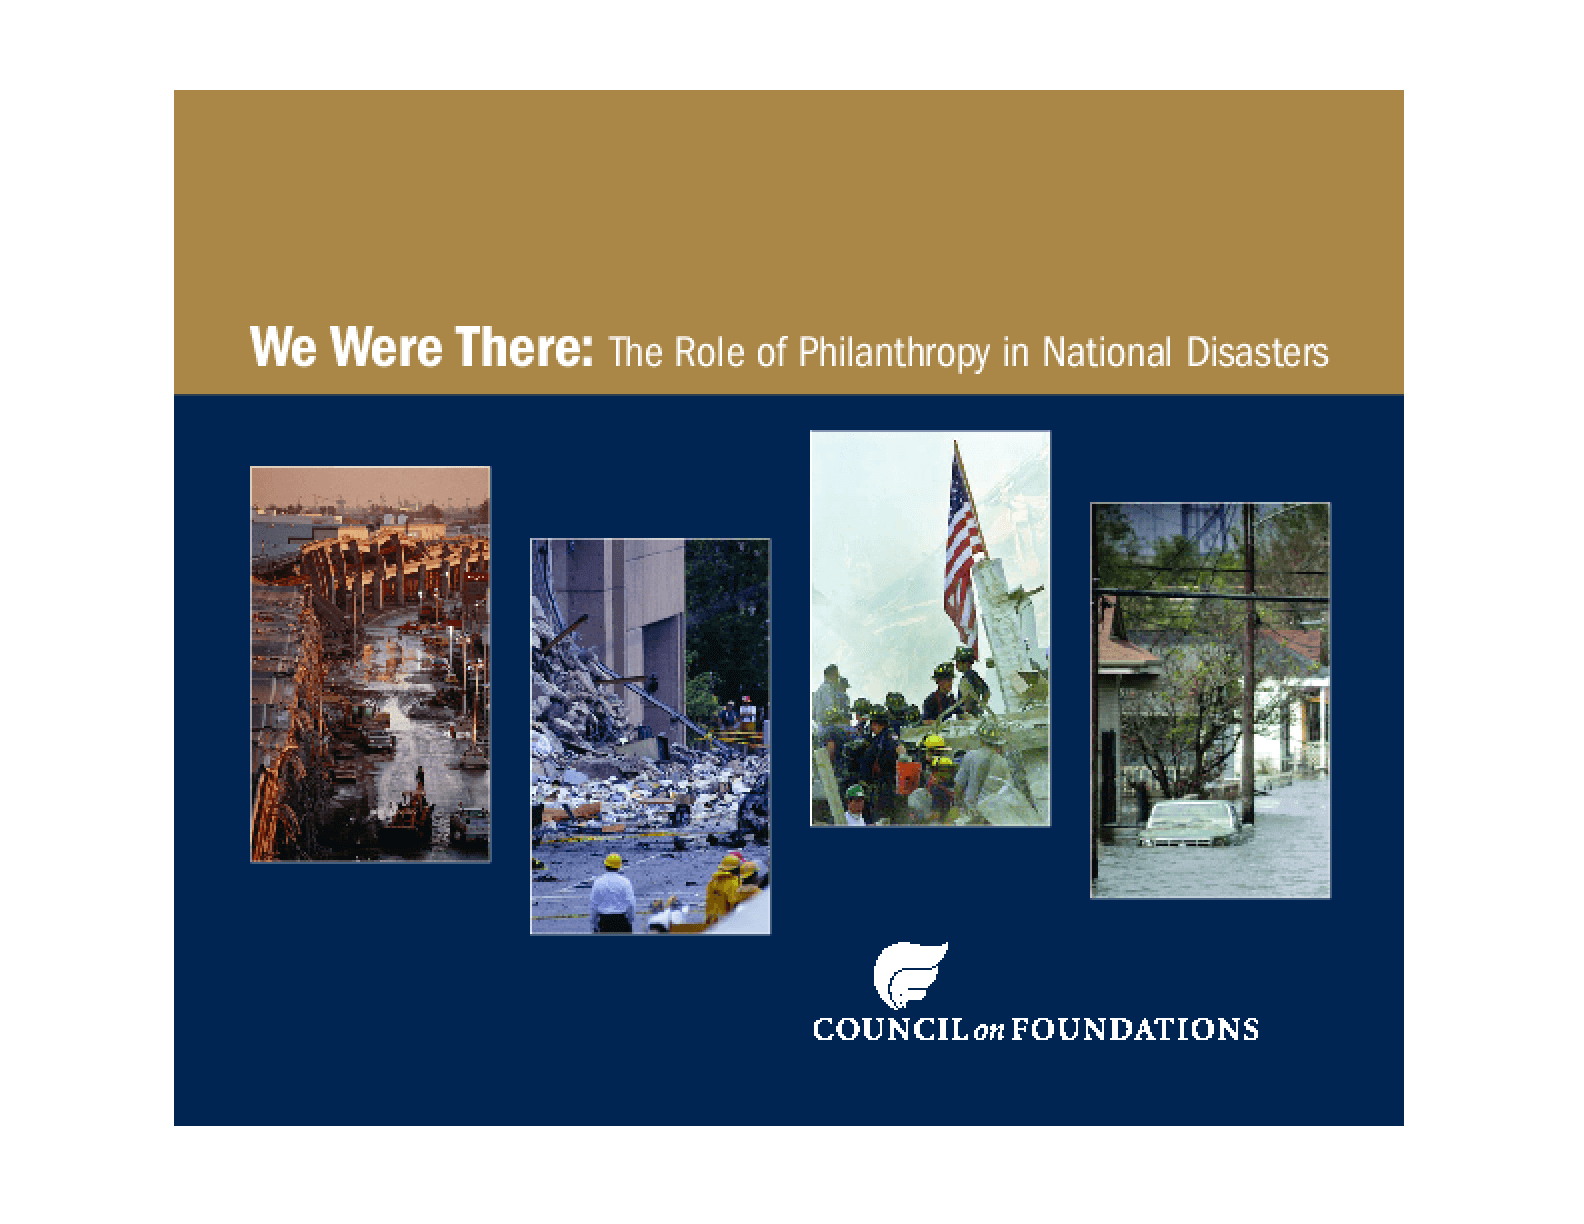 We Were There: The Role of Philanthropy in National Disasters